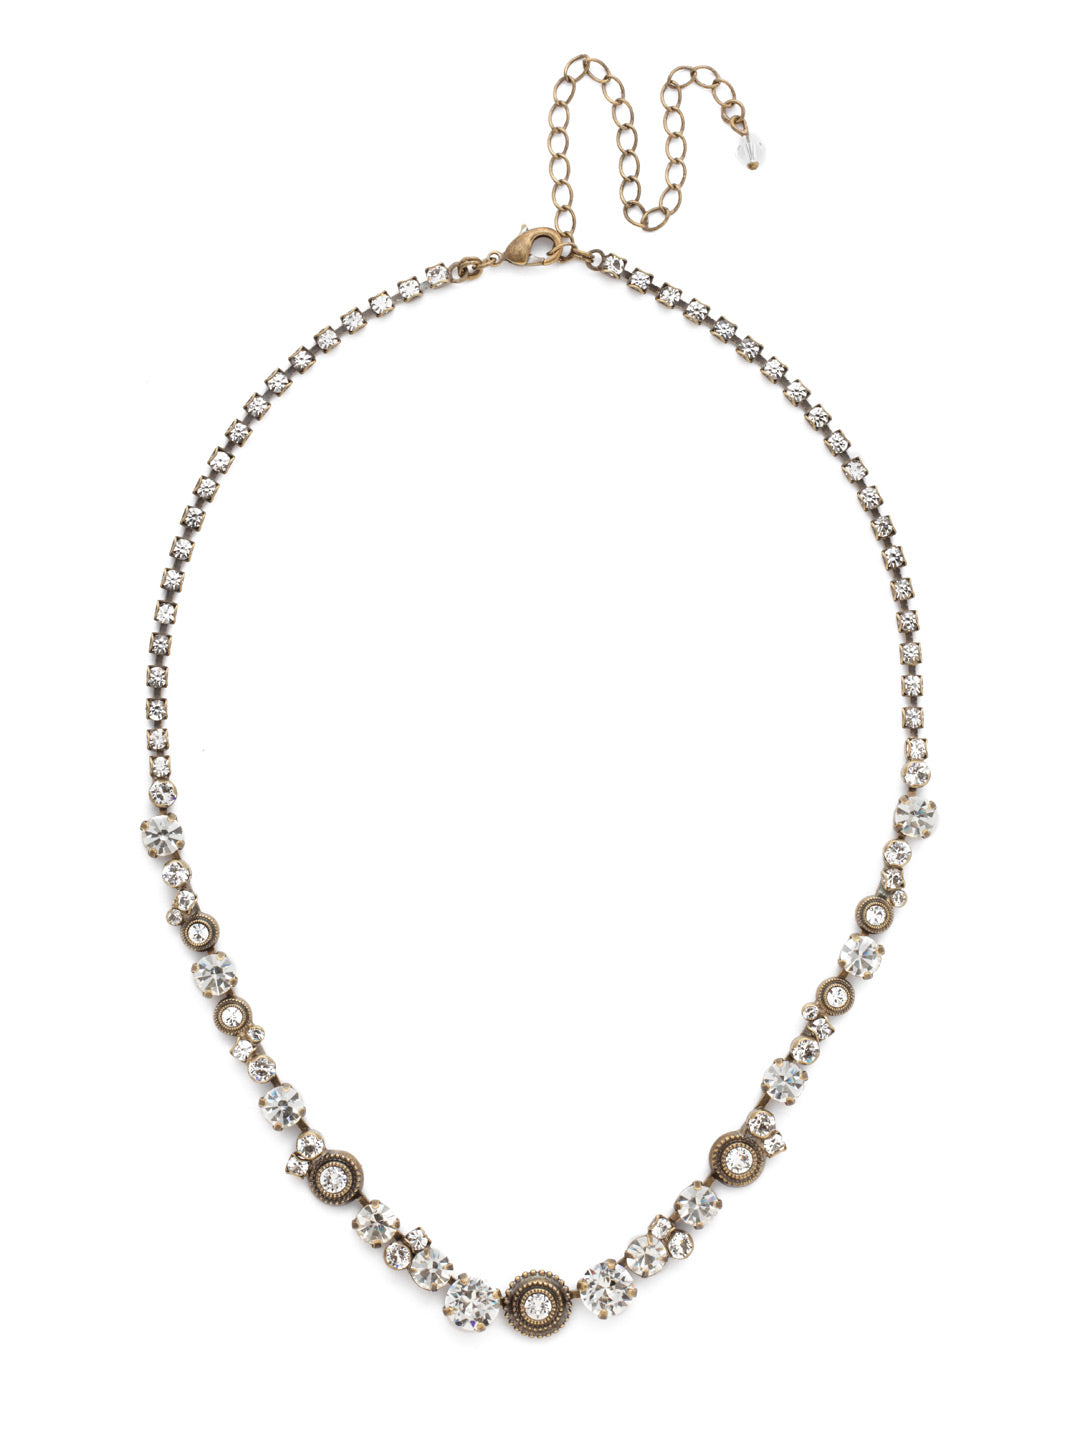 Macrame Line Necklace - NDH26AGCRY